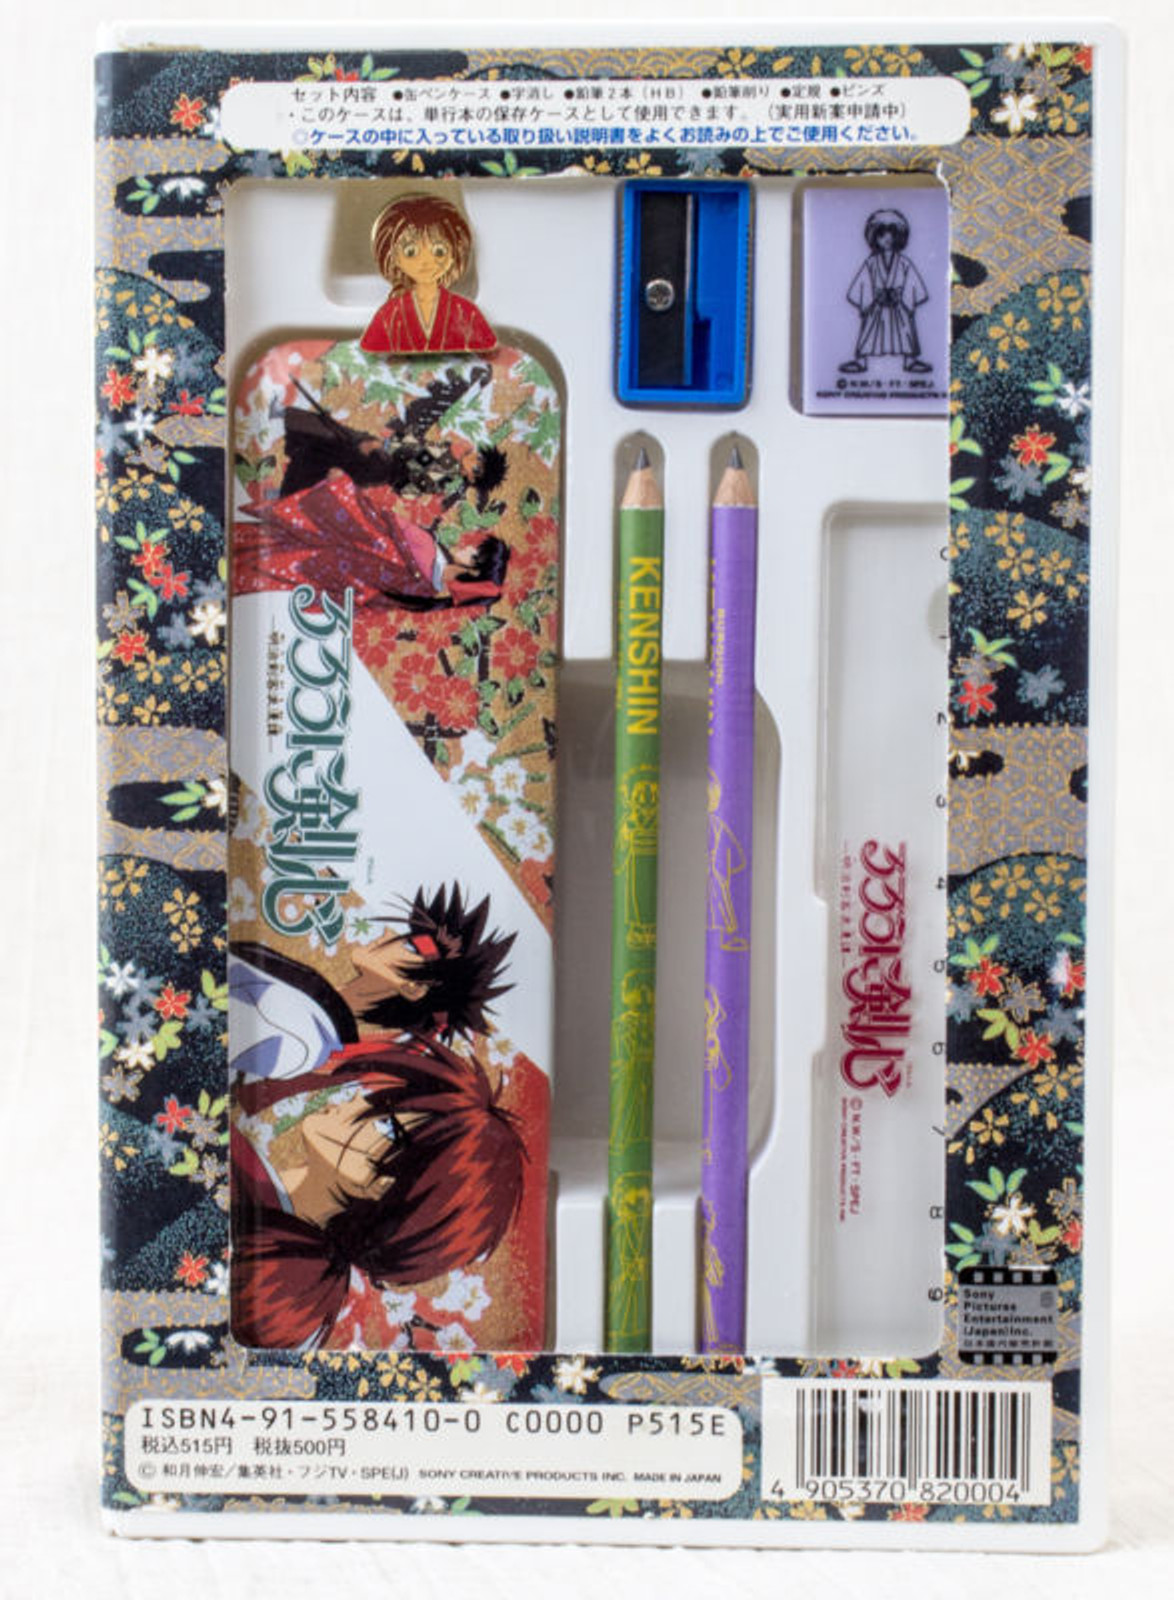 Rurouni Kenshin Stationery Goods Set Pen Case Ruler Eraser Pins JAPAN ANIME